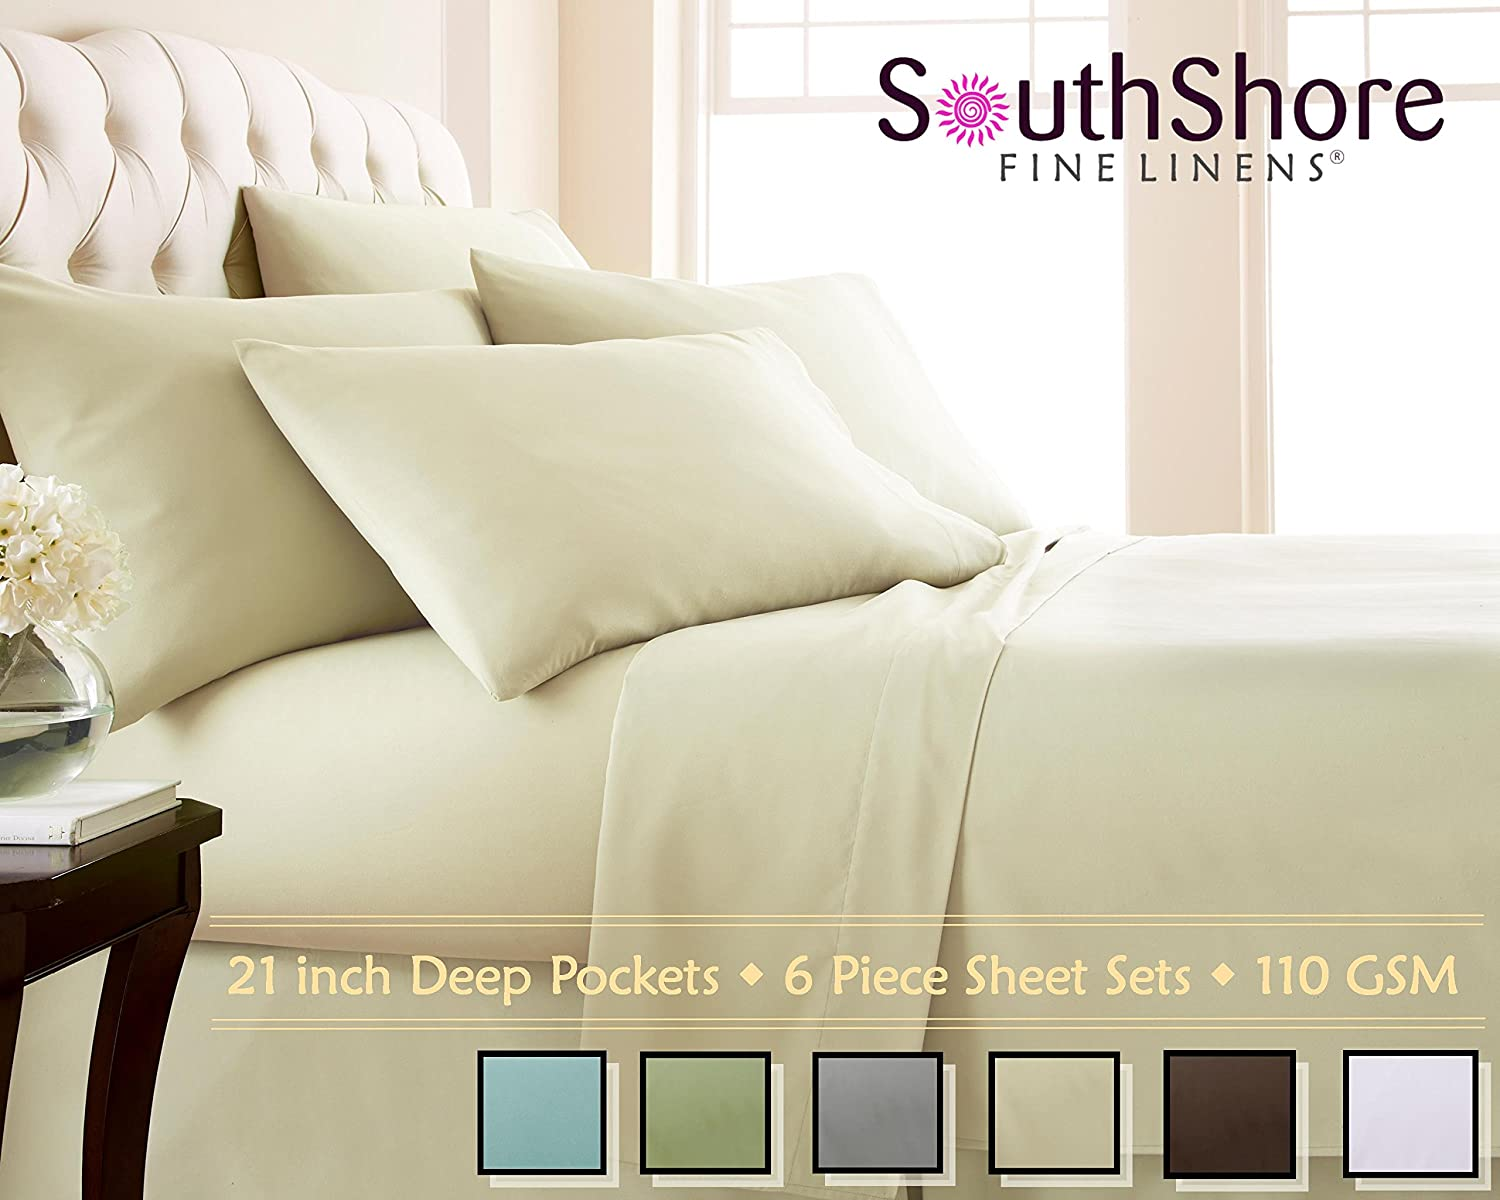 Southshore Fine Linens 6 Piece - Extra Deep Pocket Sheet Set - OFF WHITE - King